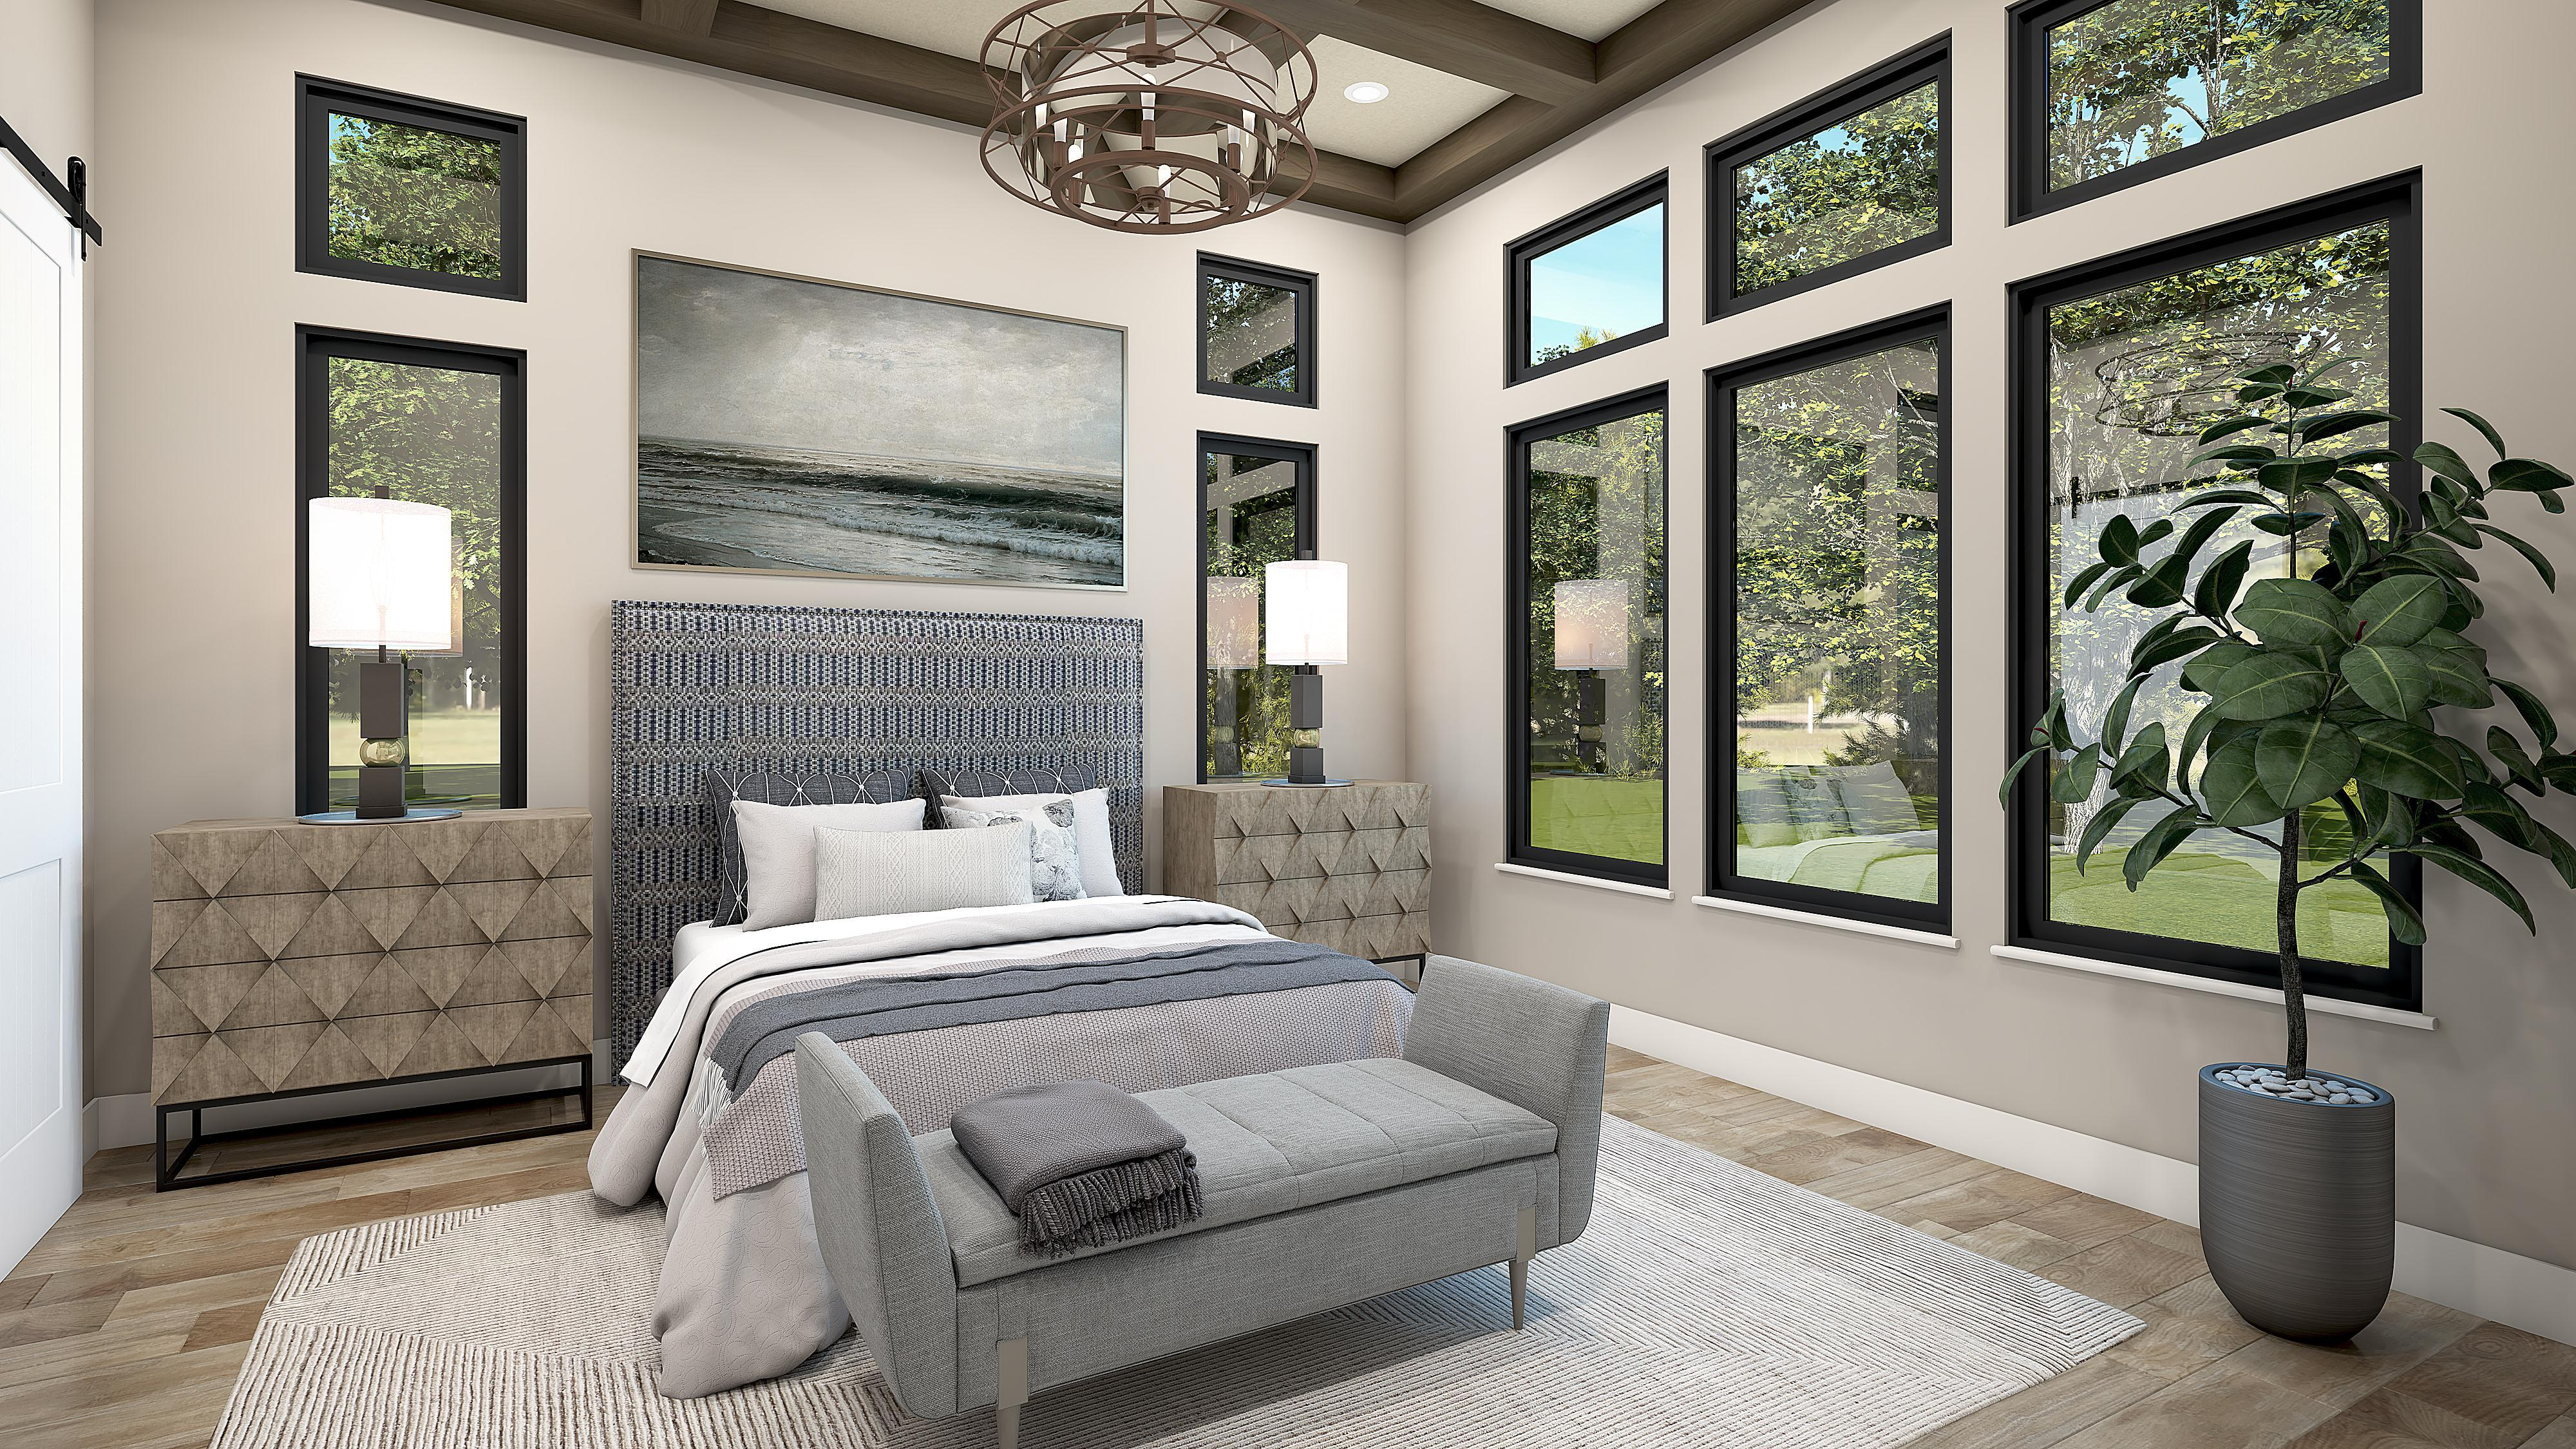 Bedroom featured in the Plan 1-A  By Copper Valley  in Stockton-Lodi, CA